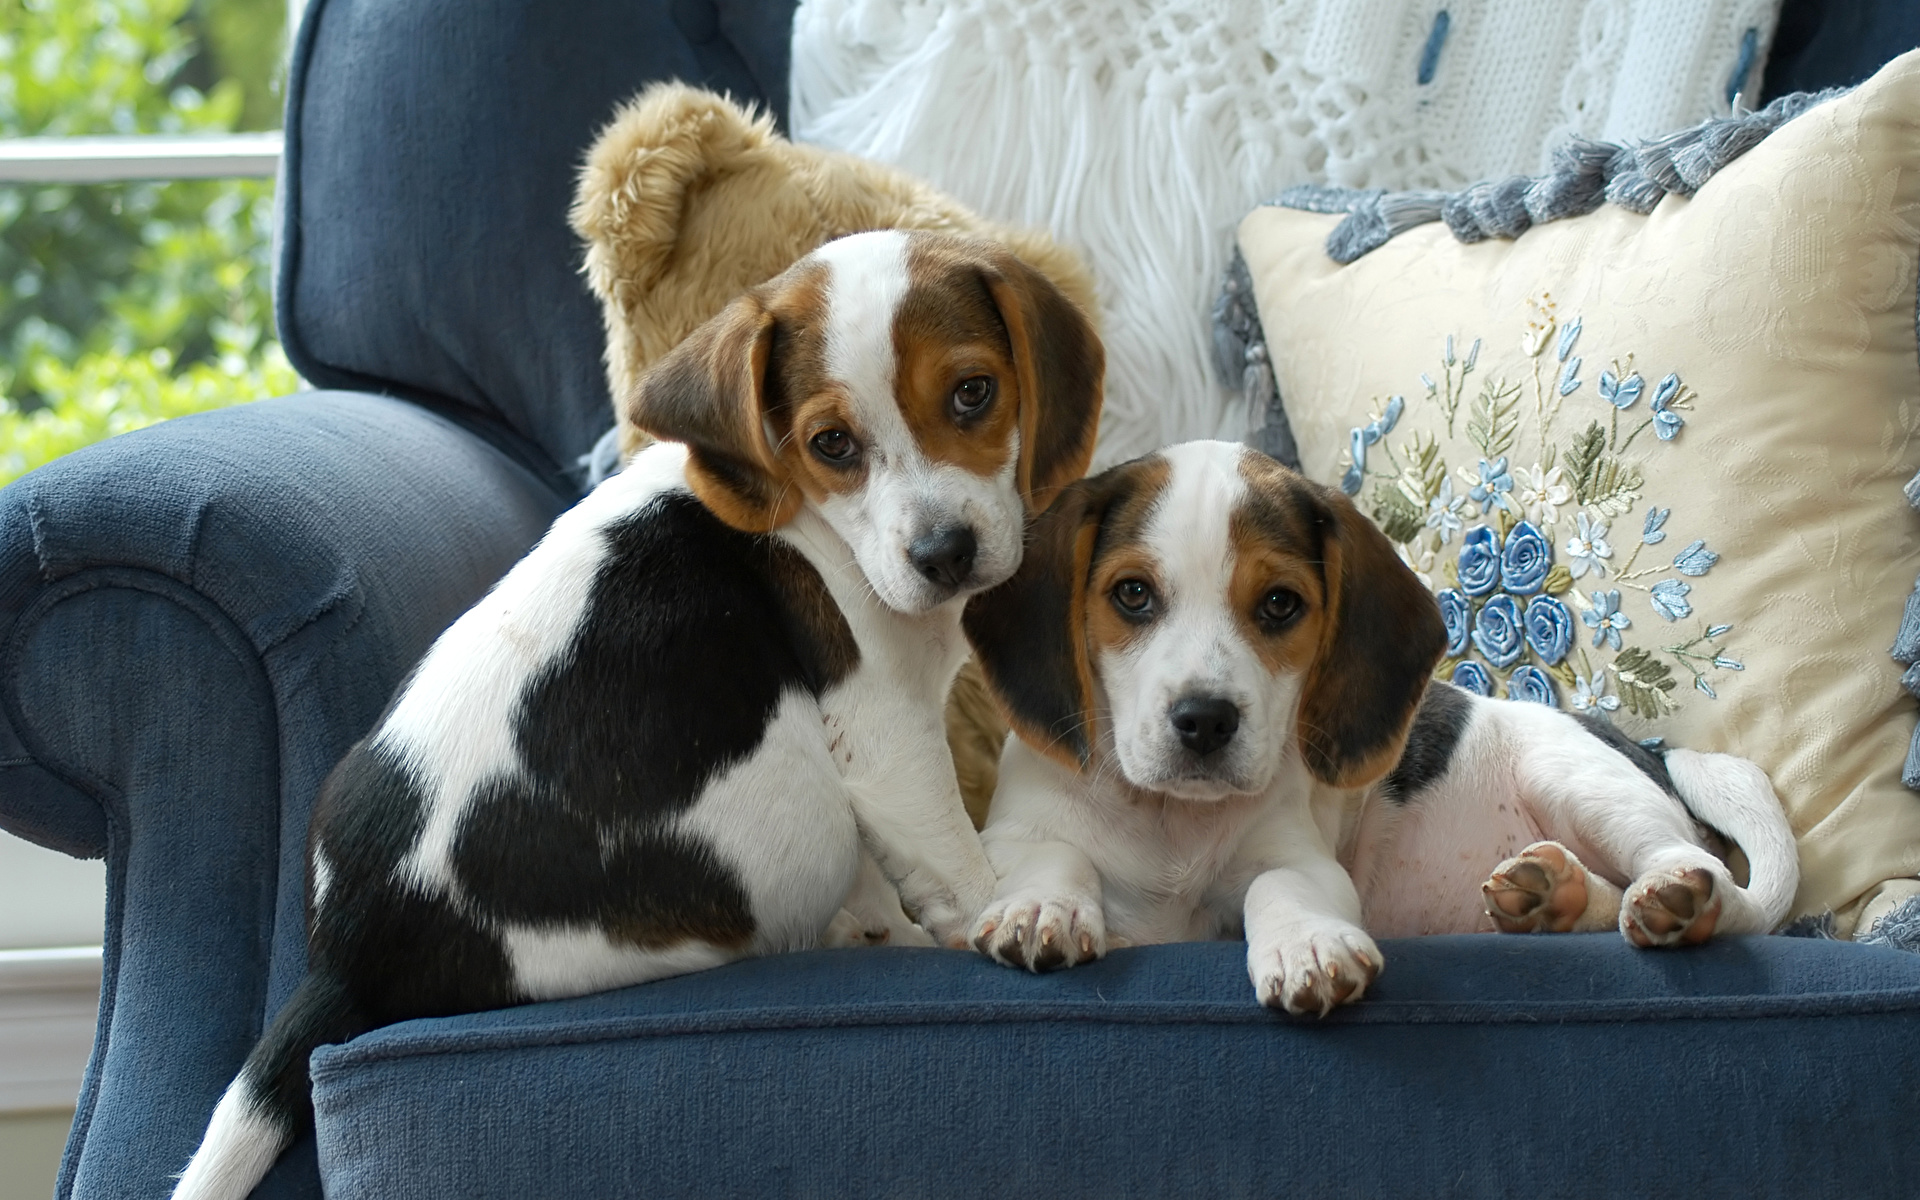 Wallpaper Beagle puppies dog Two Couch animal 1920x1200 Puppy Dogs 2 Sofa Animals